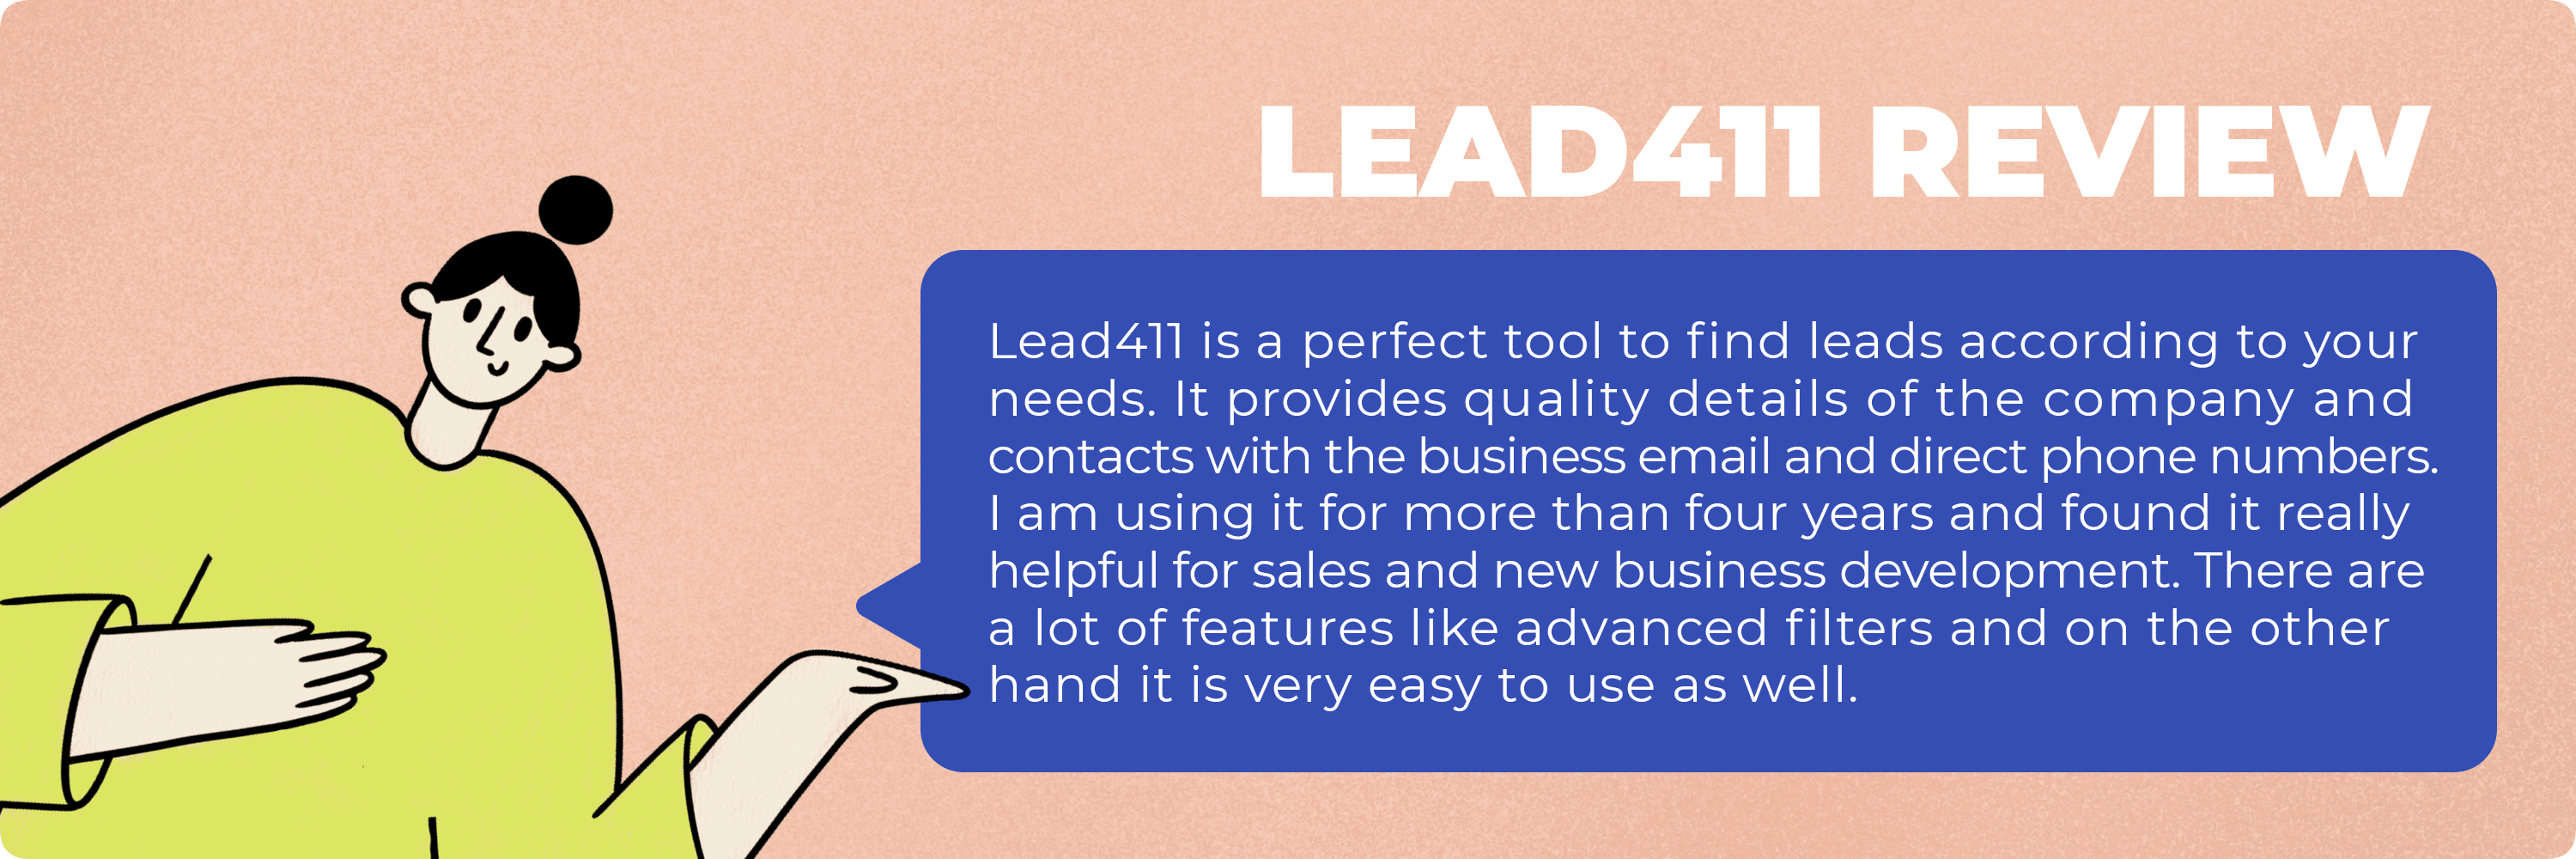 lead411 review